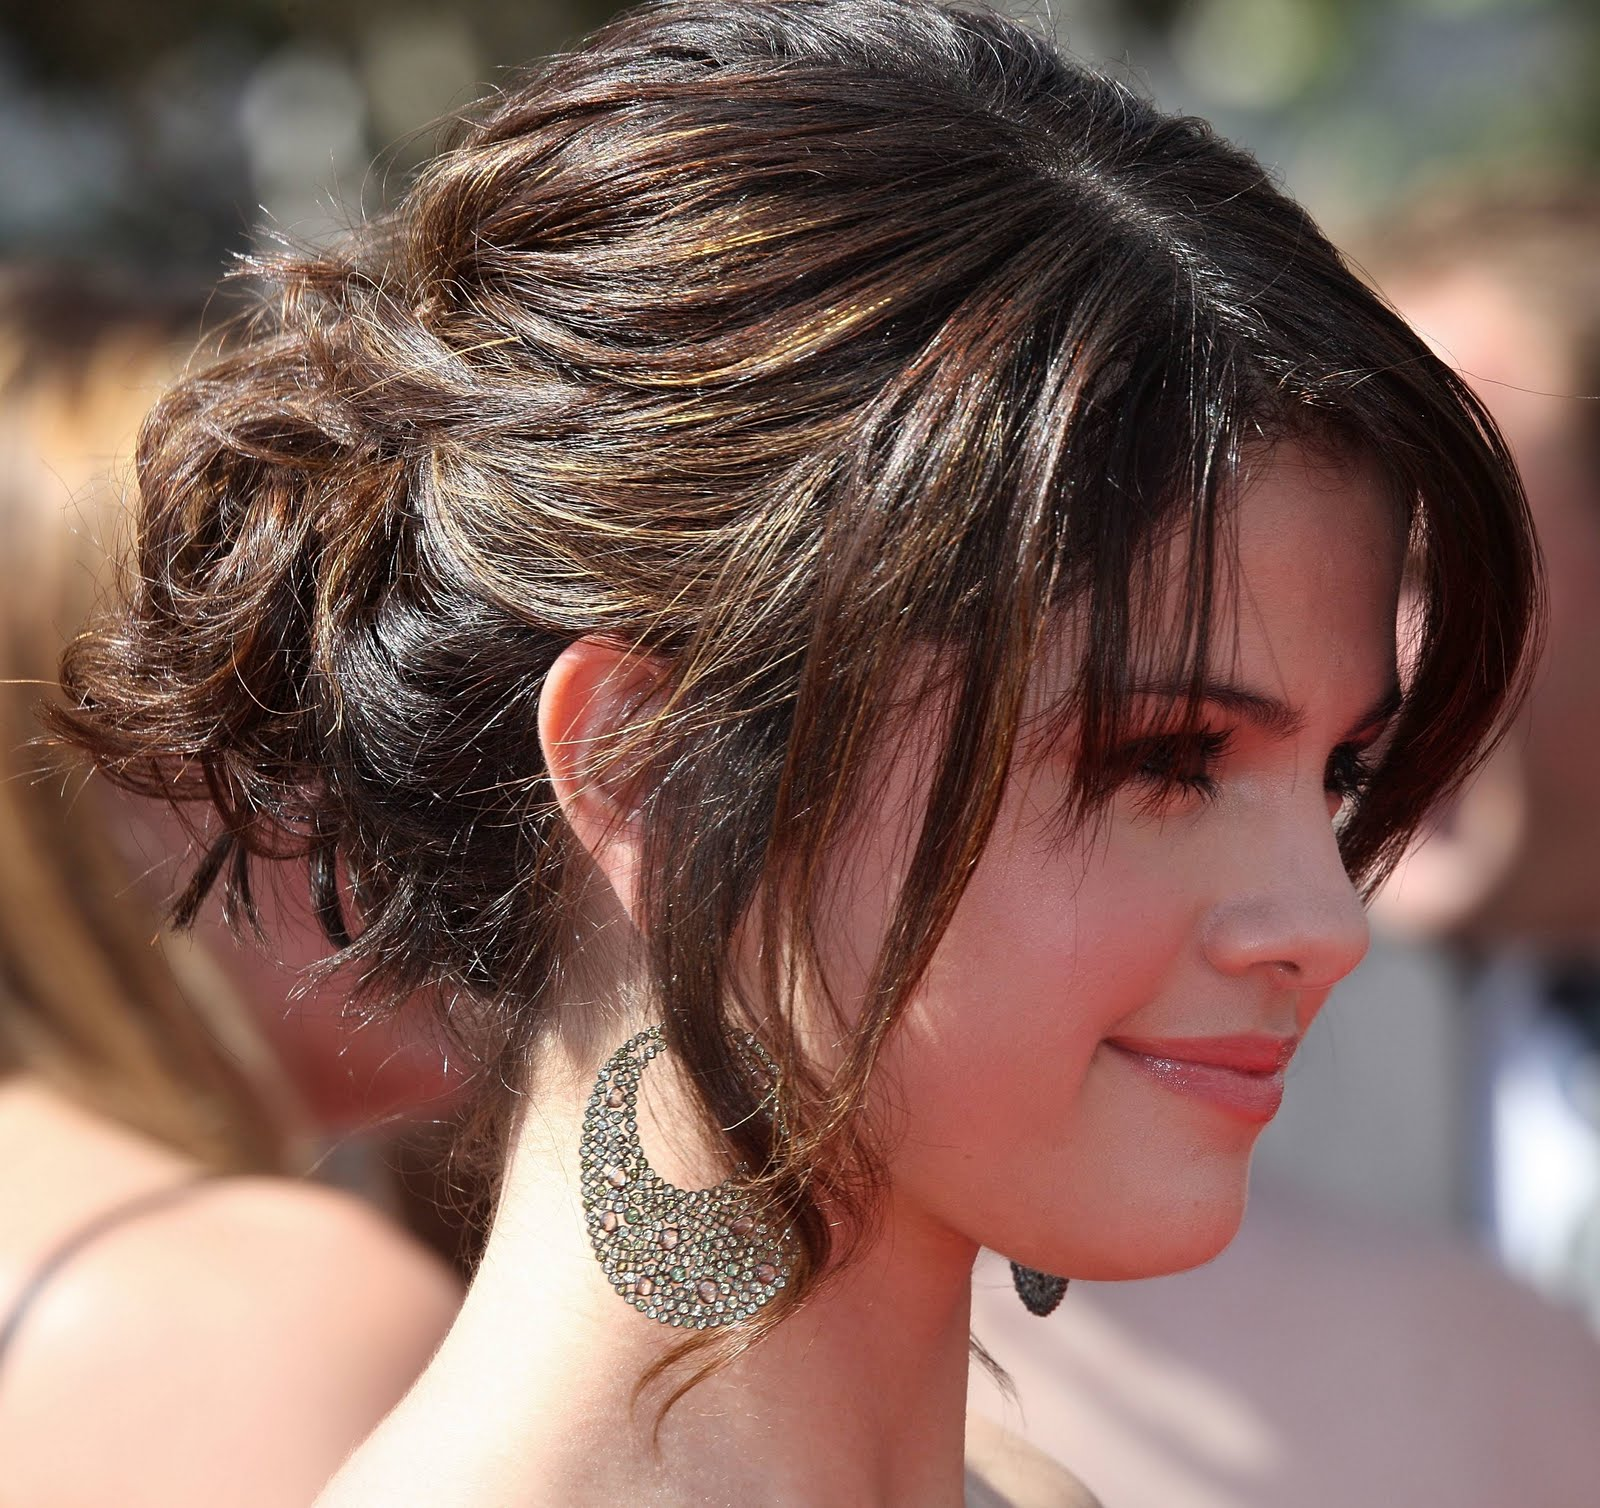 Bangs Hairstyles 2011, Long Hairstyle 2011, Hairstyle 2011, New Long Hairstyle 2011, Celebrity Long Hairstyles 2023